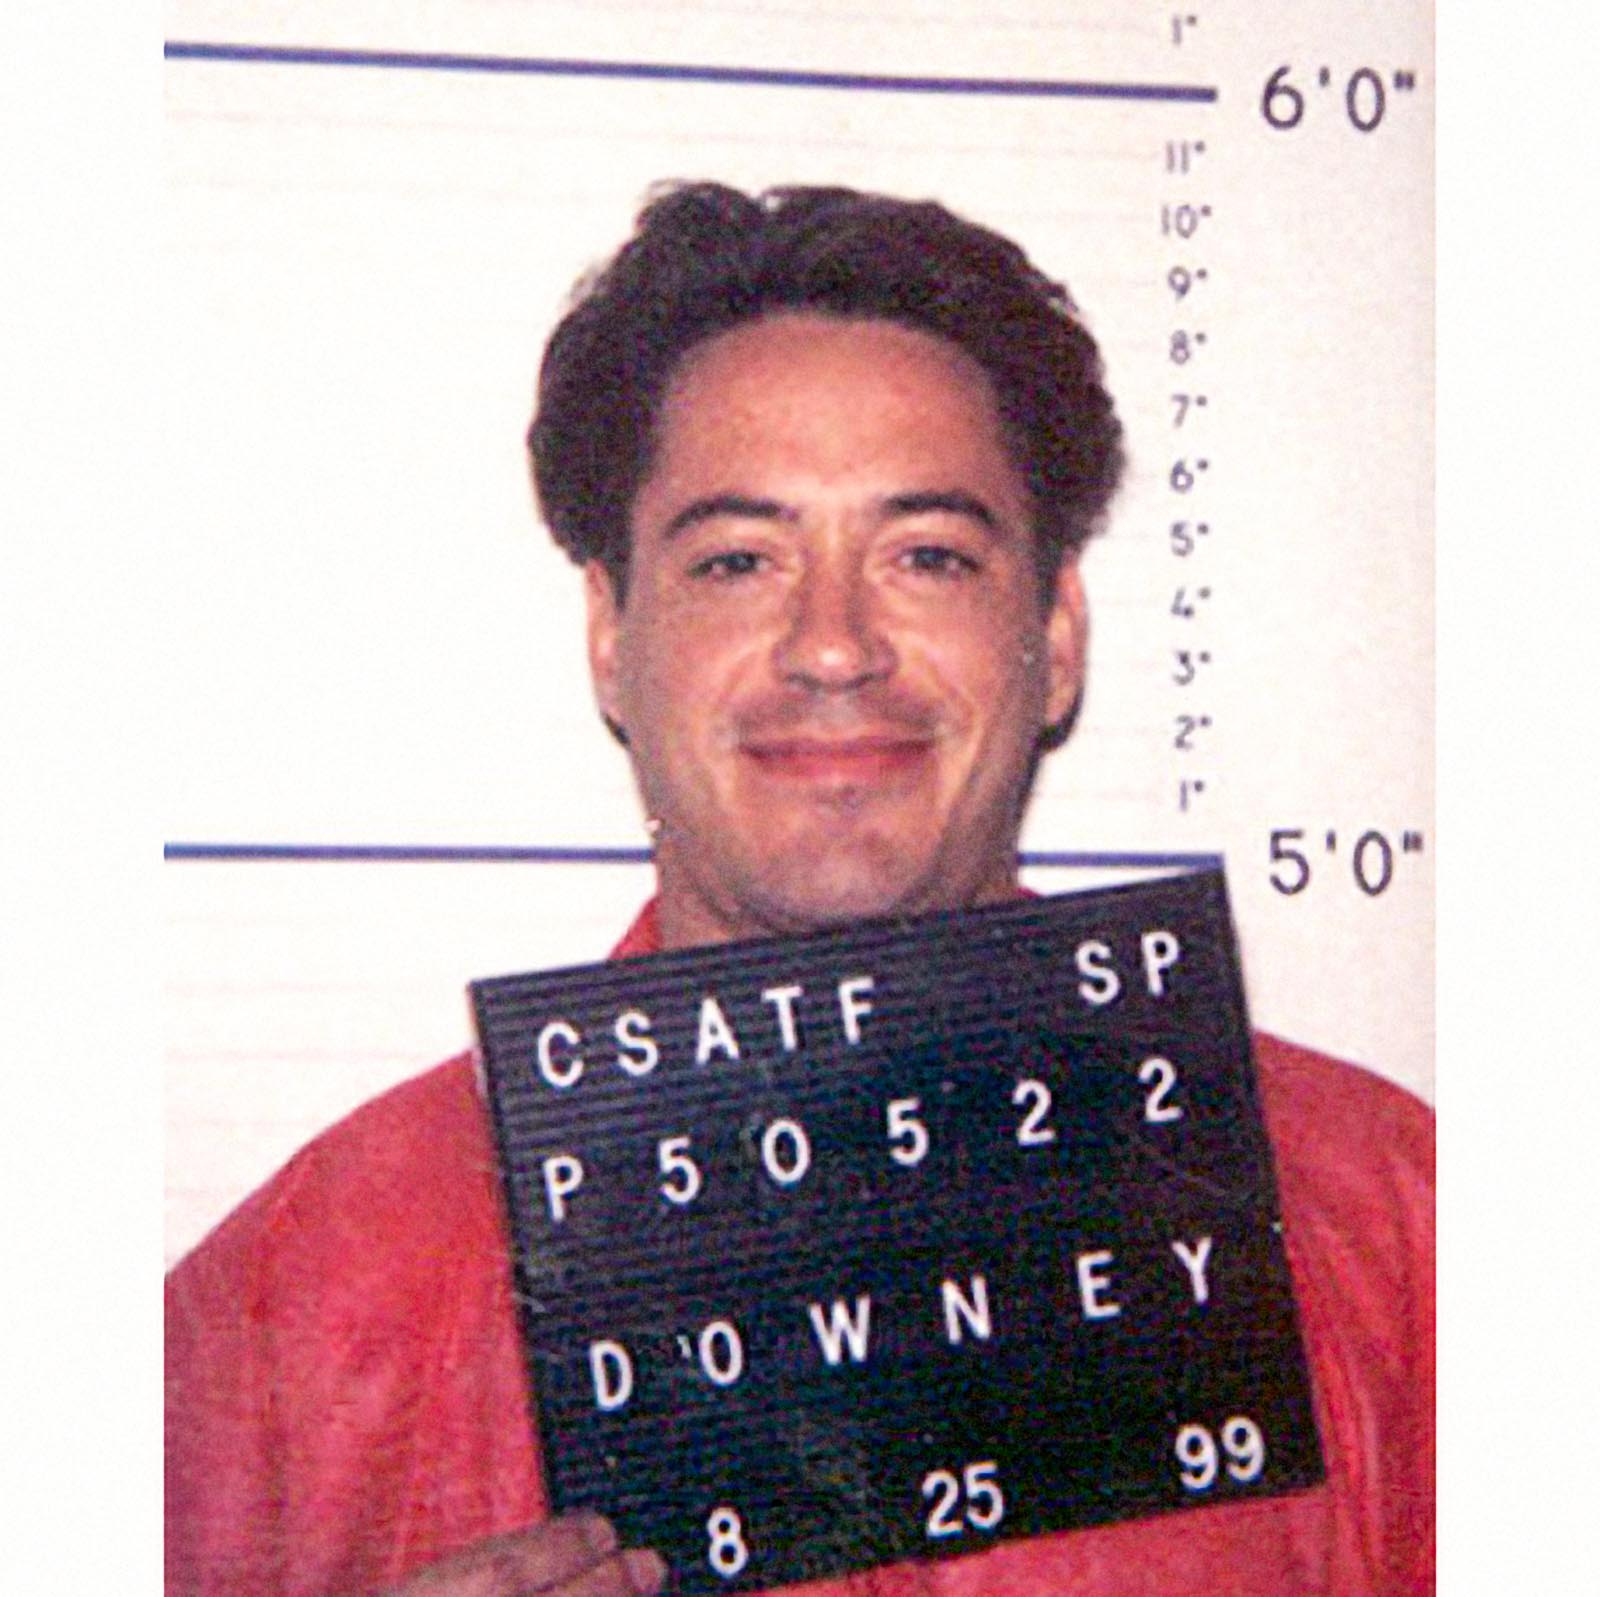 Robert Downey Jr, 1999    Robert Downey Jr  was arrested in 1999 after missing required drug tests while on probation for 1996 charges of possession of heroin, cocaine and a .357 magnum handgun.